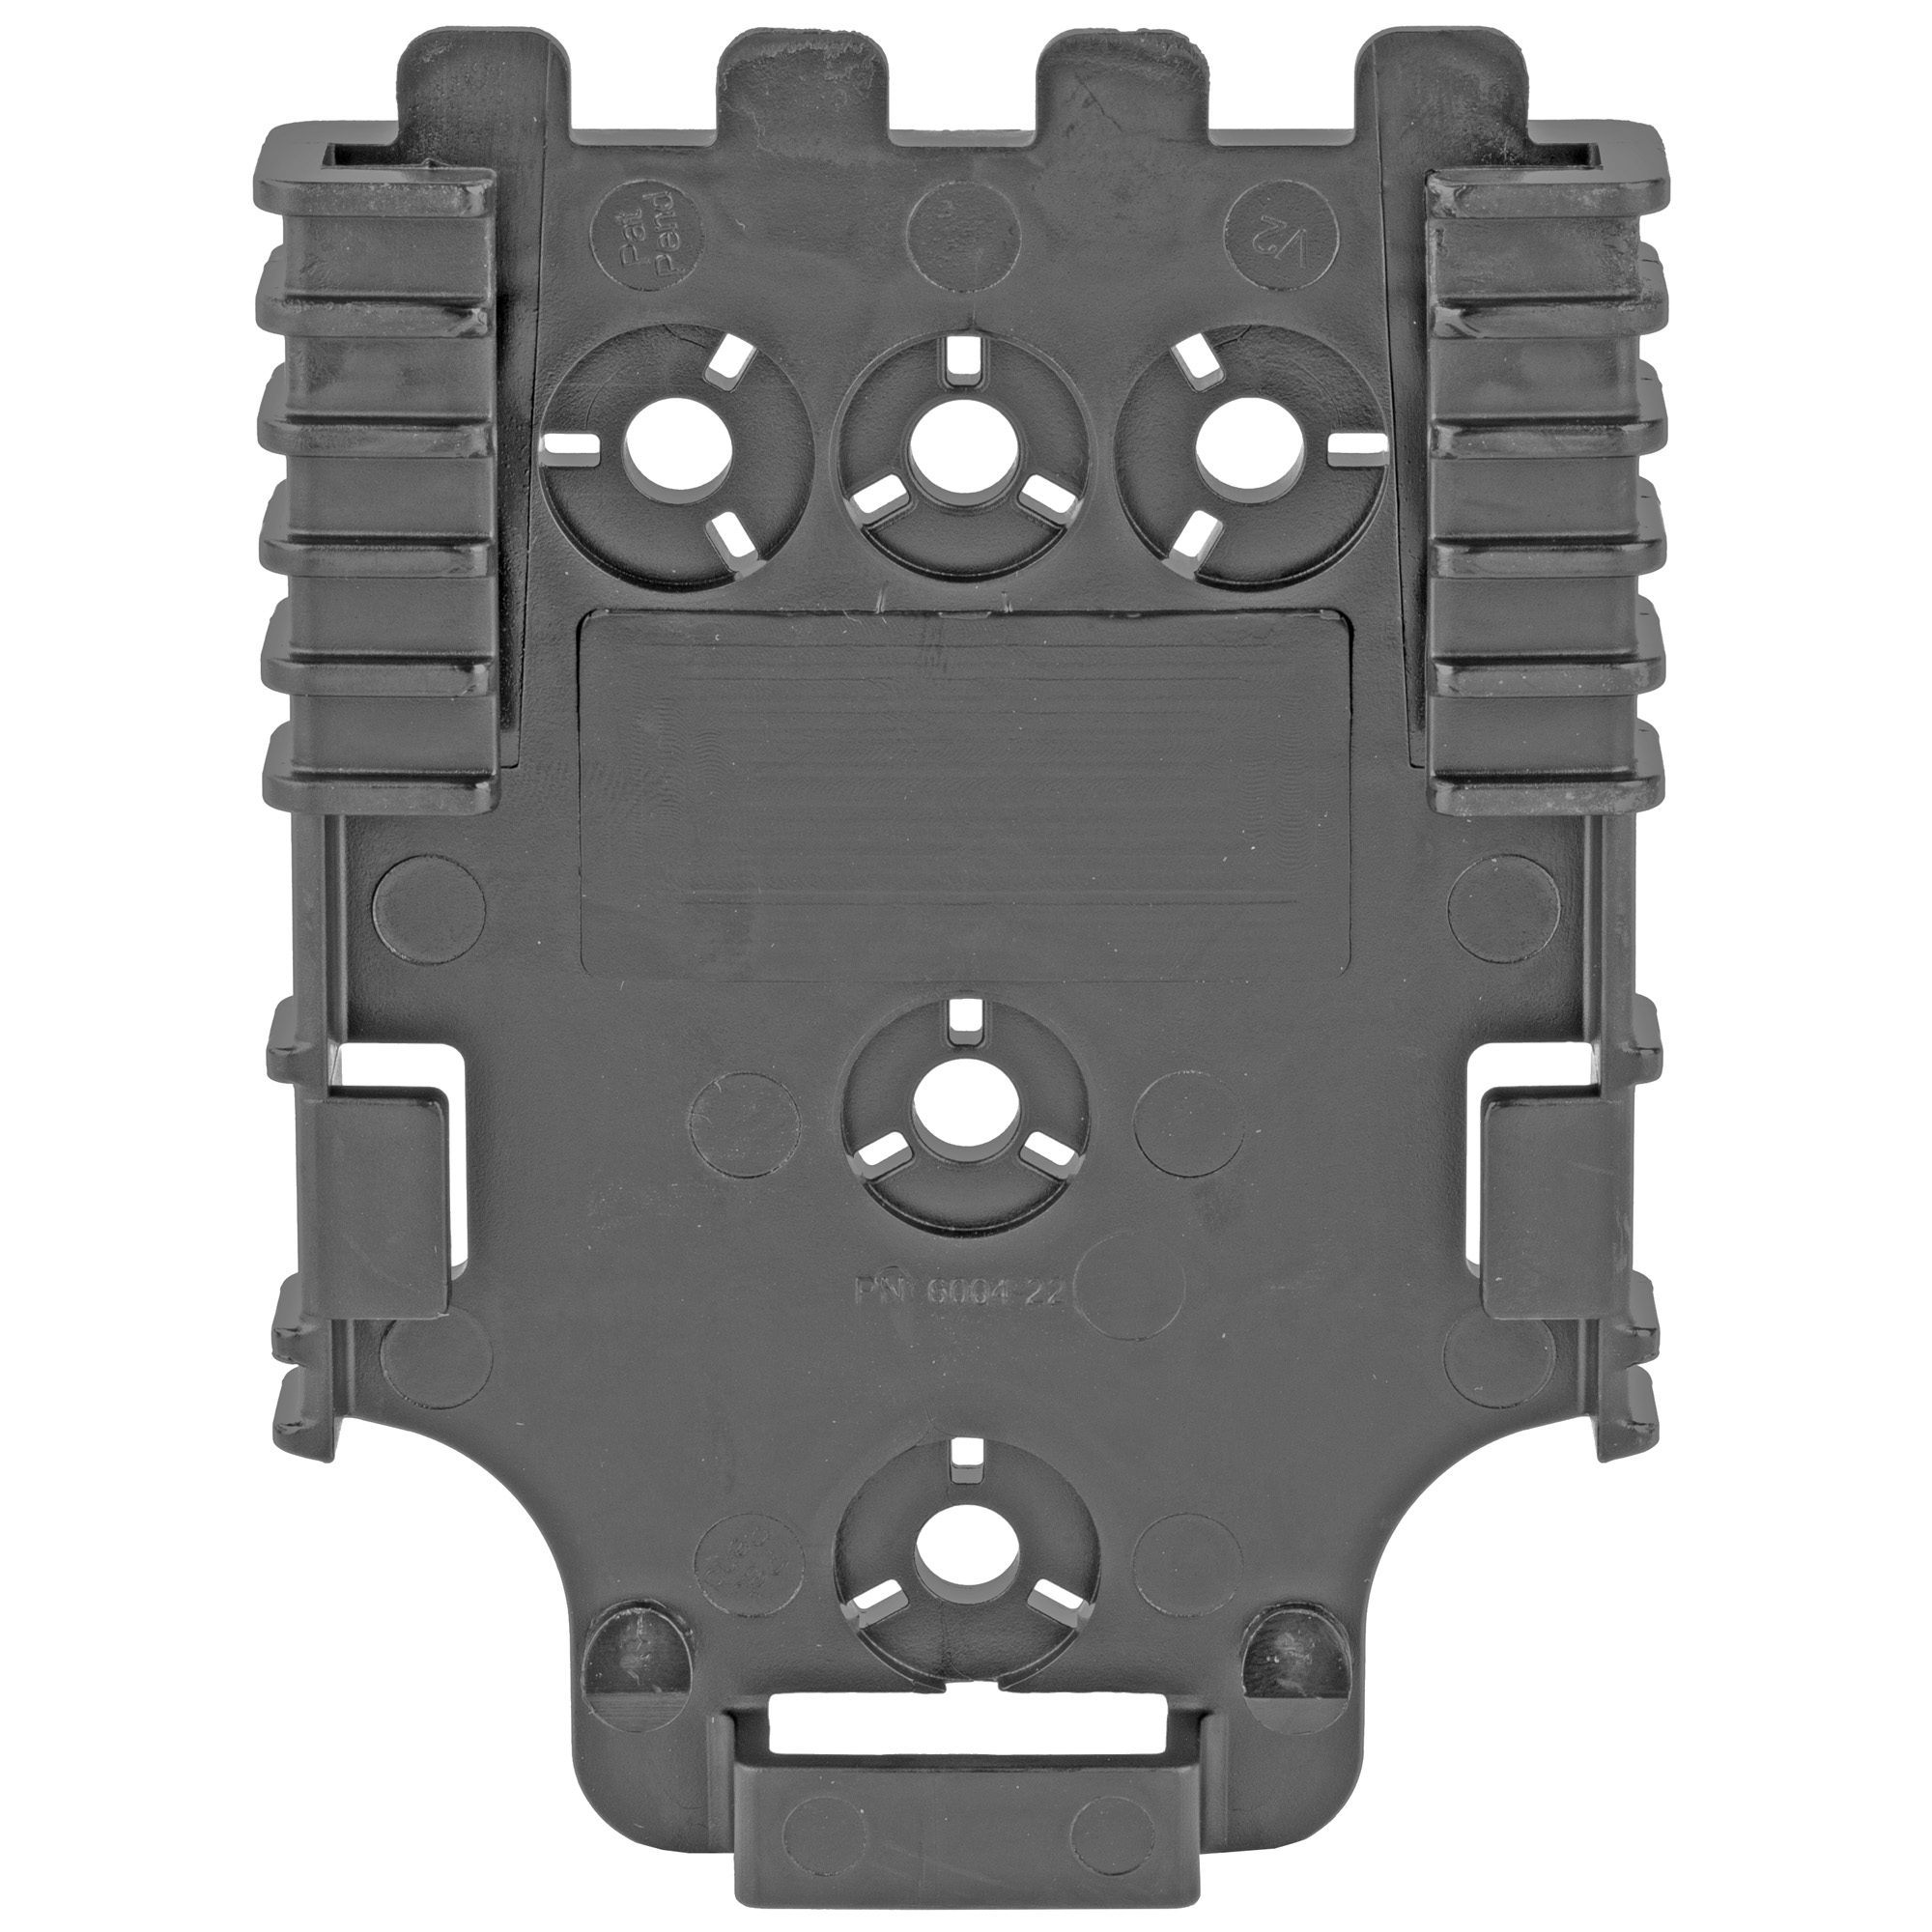 "This QLS 22L Quick attachment holster system receiver plate with lock is for the mounting platform for the QLS locking fork. You can mount your holster nearly anywhere: belt"" thigh rig"" in the home or even in a vehicle. It works with nearly all Safariland holsters and duty gear."